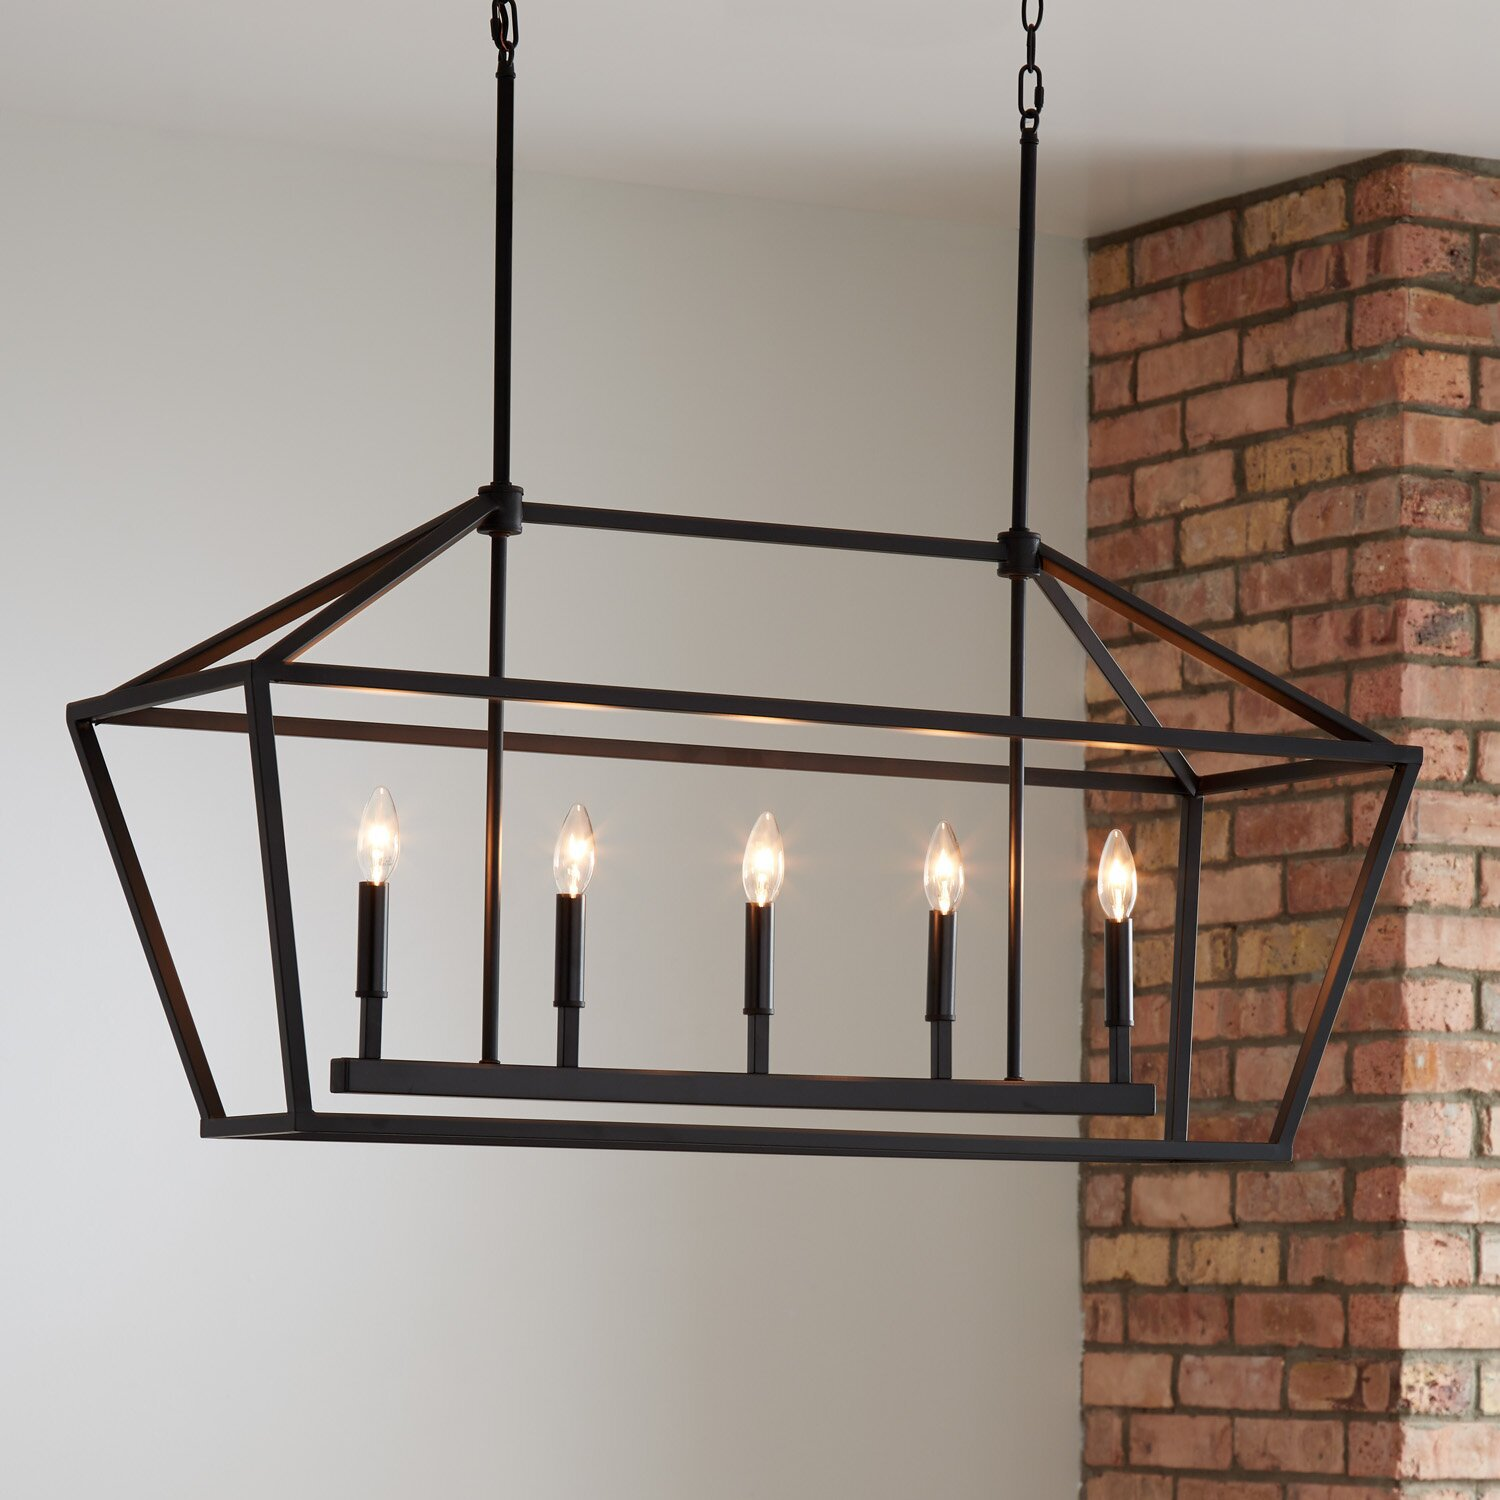 Traditional Street Lamp-Shaped Kitchen Ceiling Fixture